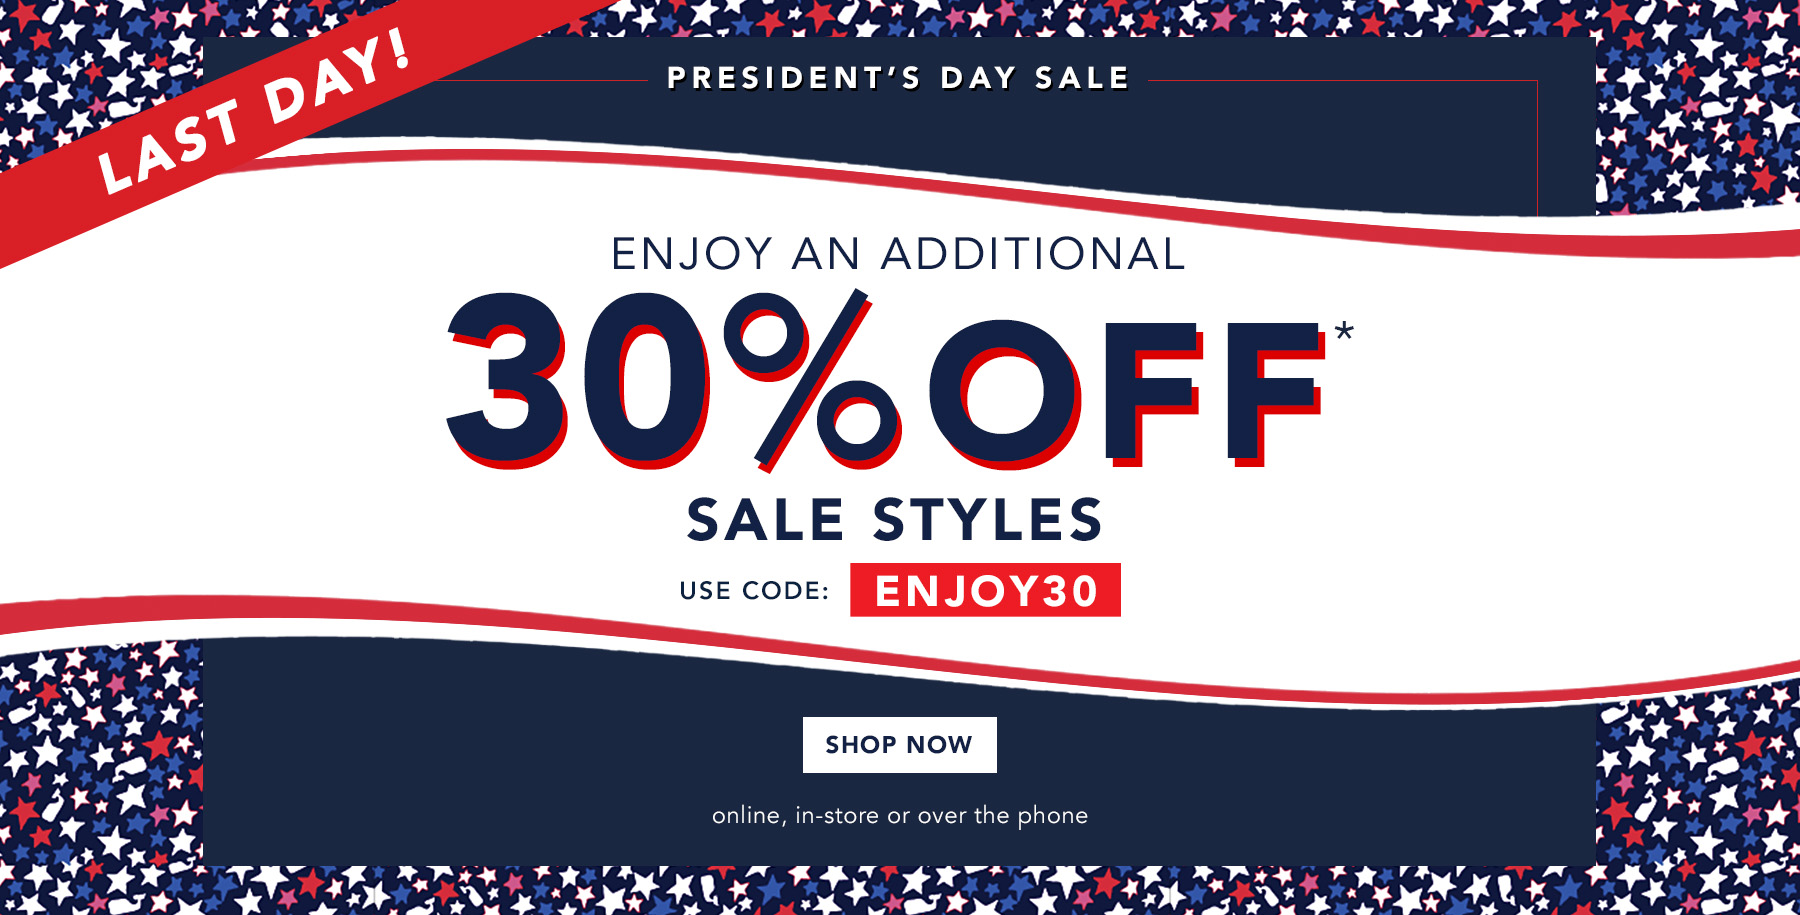 Last Day! President's Day Sale. Enjoy 30% off* sale styles. Prices as marked. Shop now. Online, in-store or over the phone.